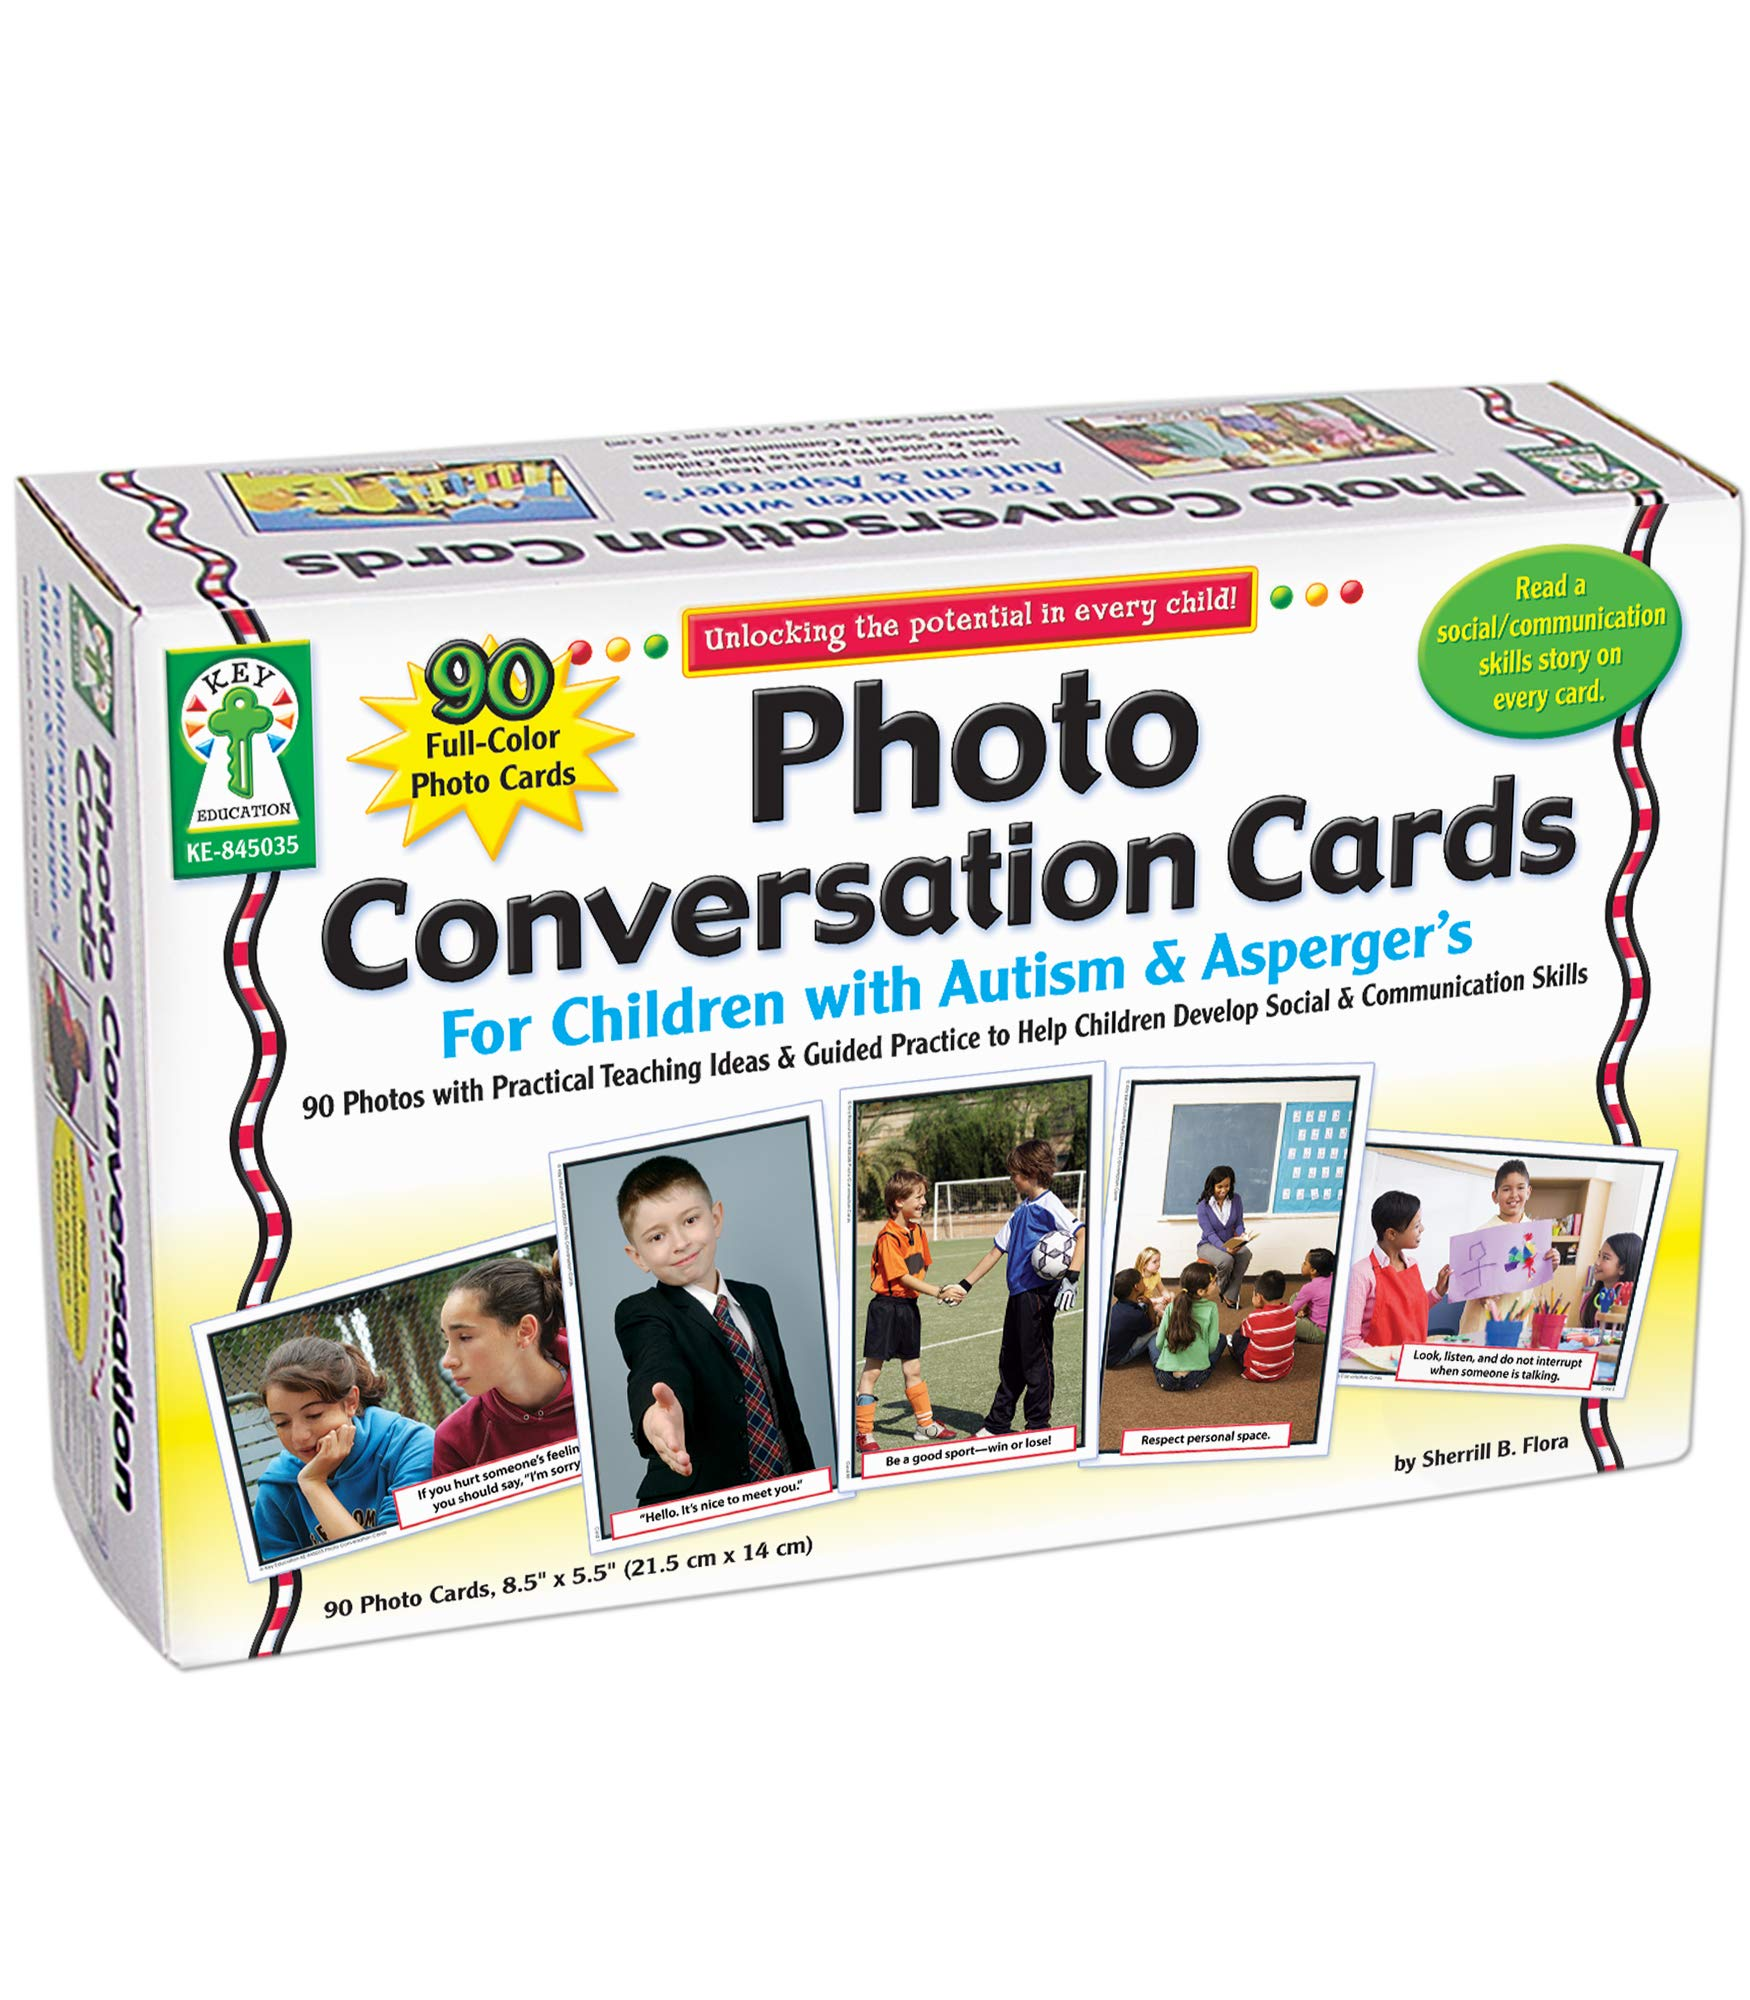 Key Education Photo Conversation Cards— Grades K-5 Social, Emotional, Behavioral, Communication Skills Flashcards For Children With Autism and Asperger's (90 pc)